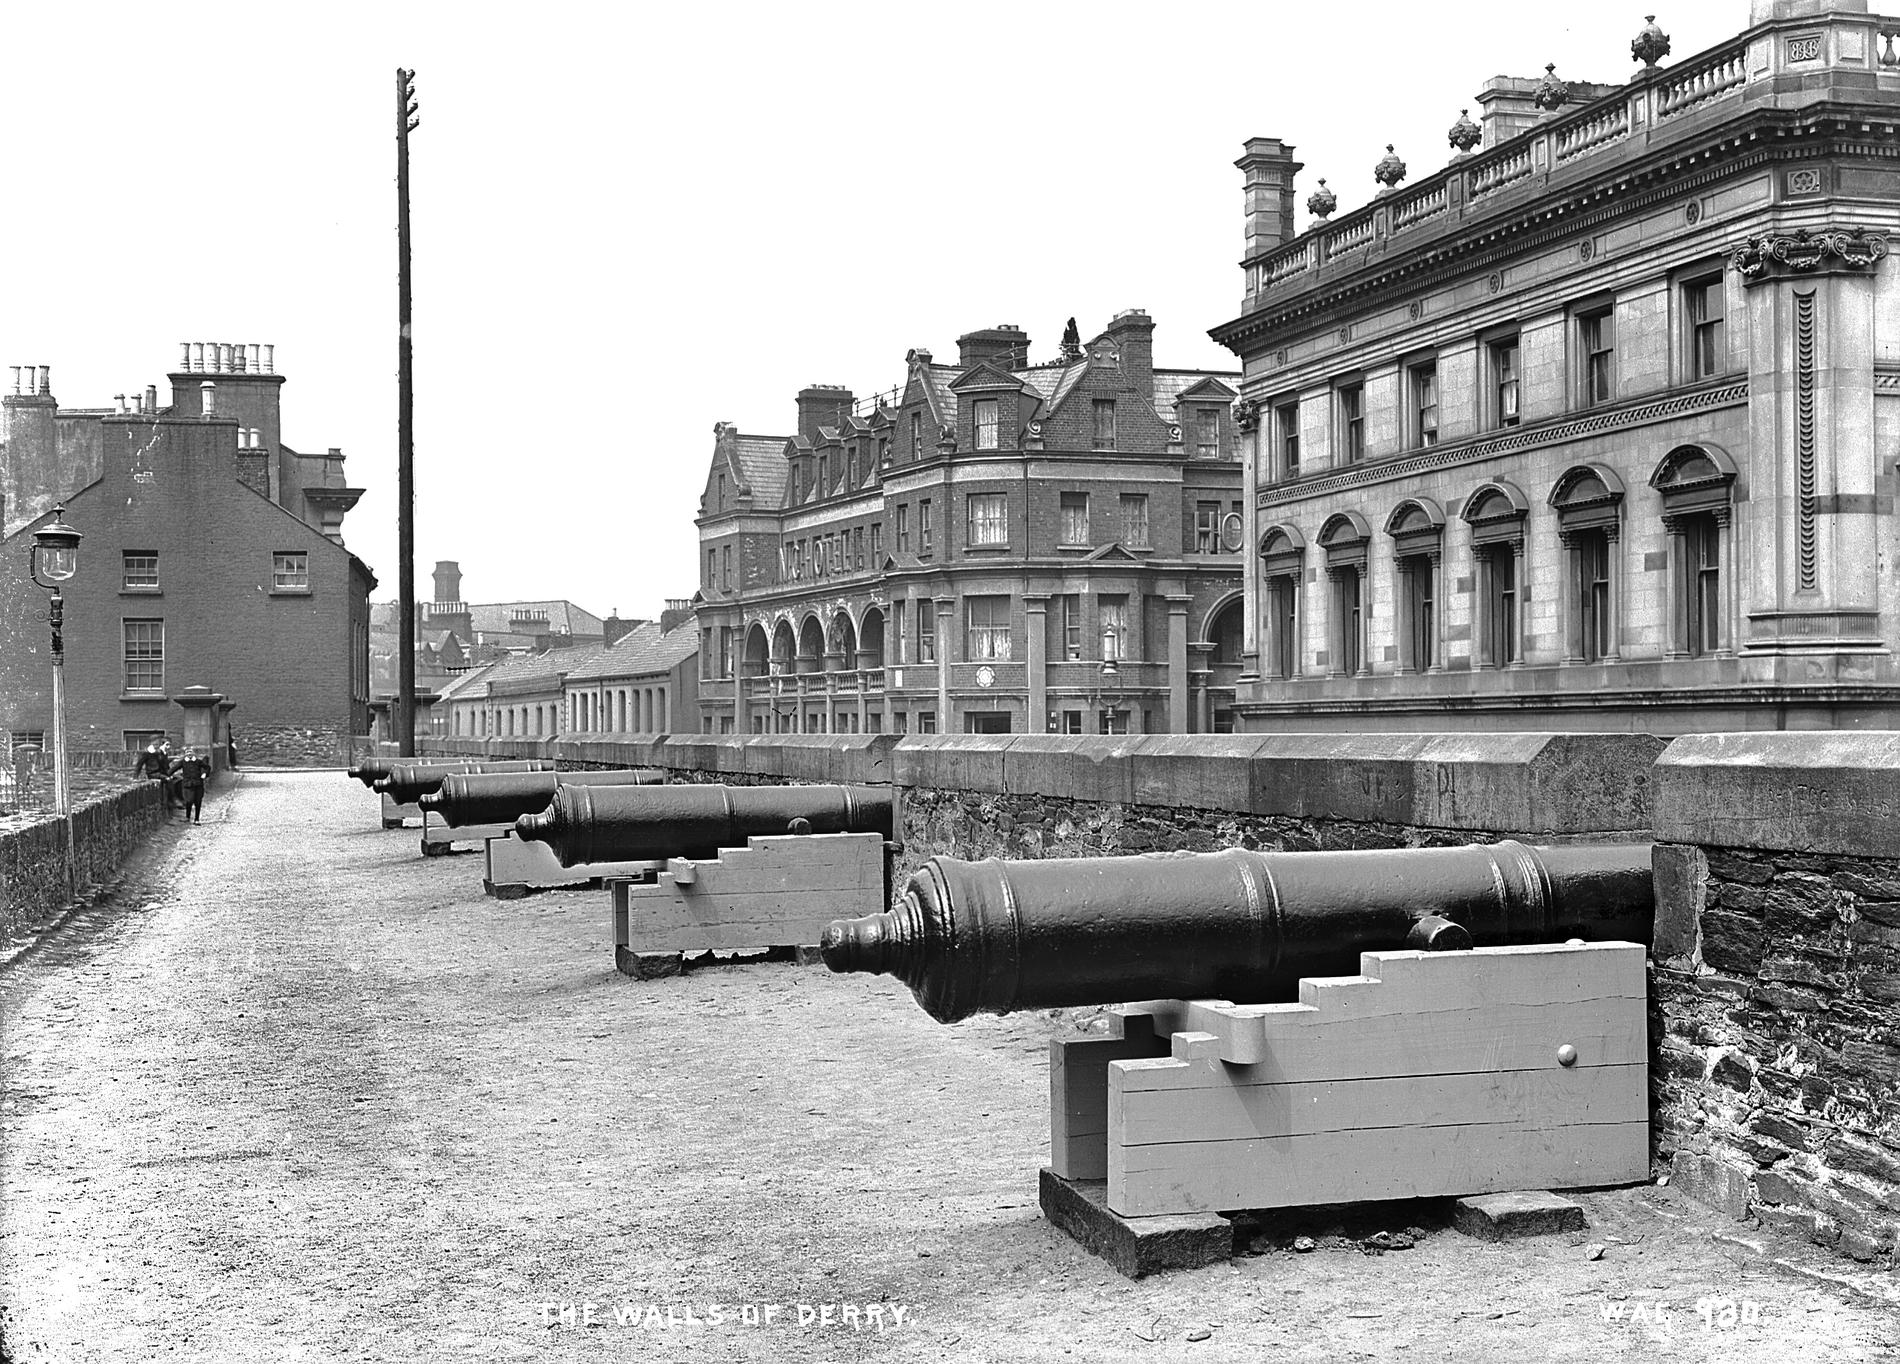 THE WALLS OF DERRY (Photograph; glass plate negative)